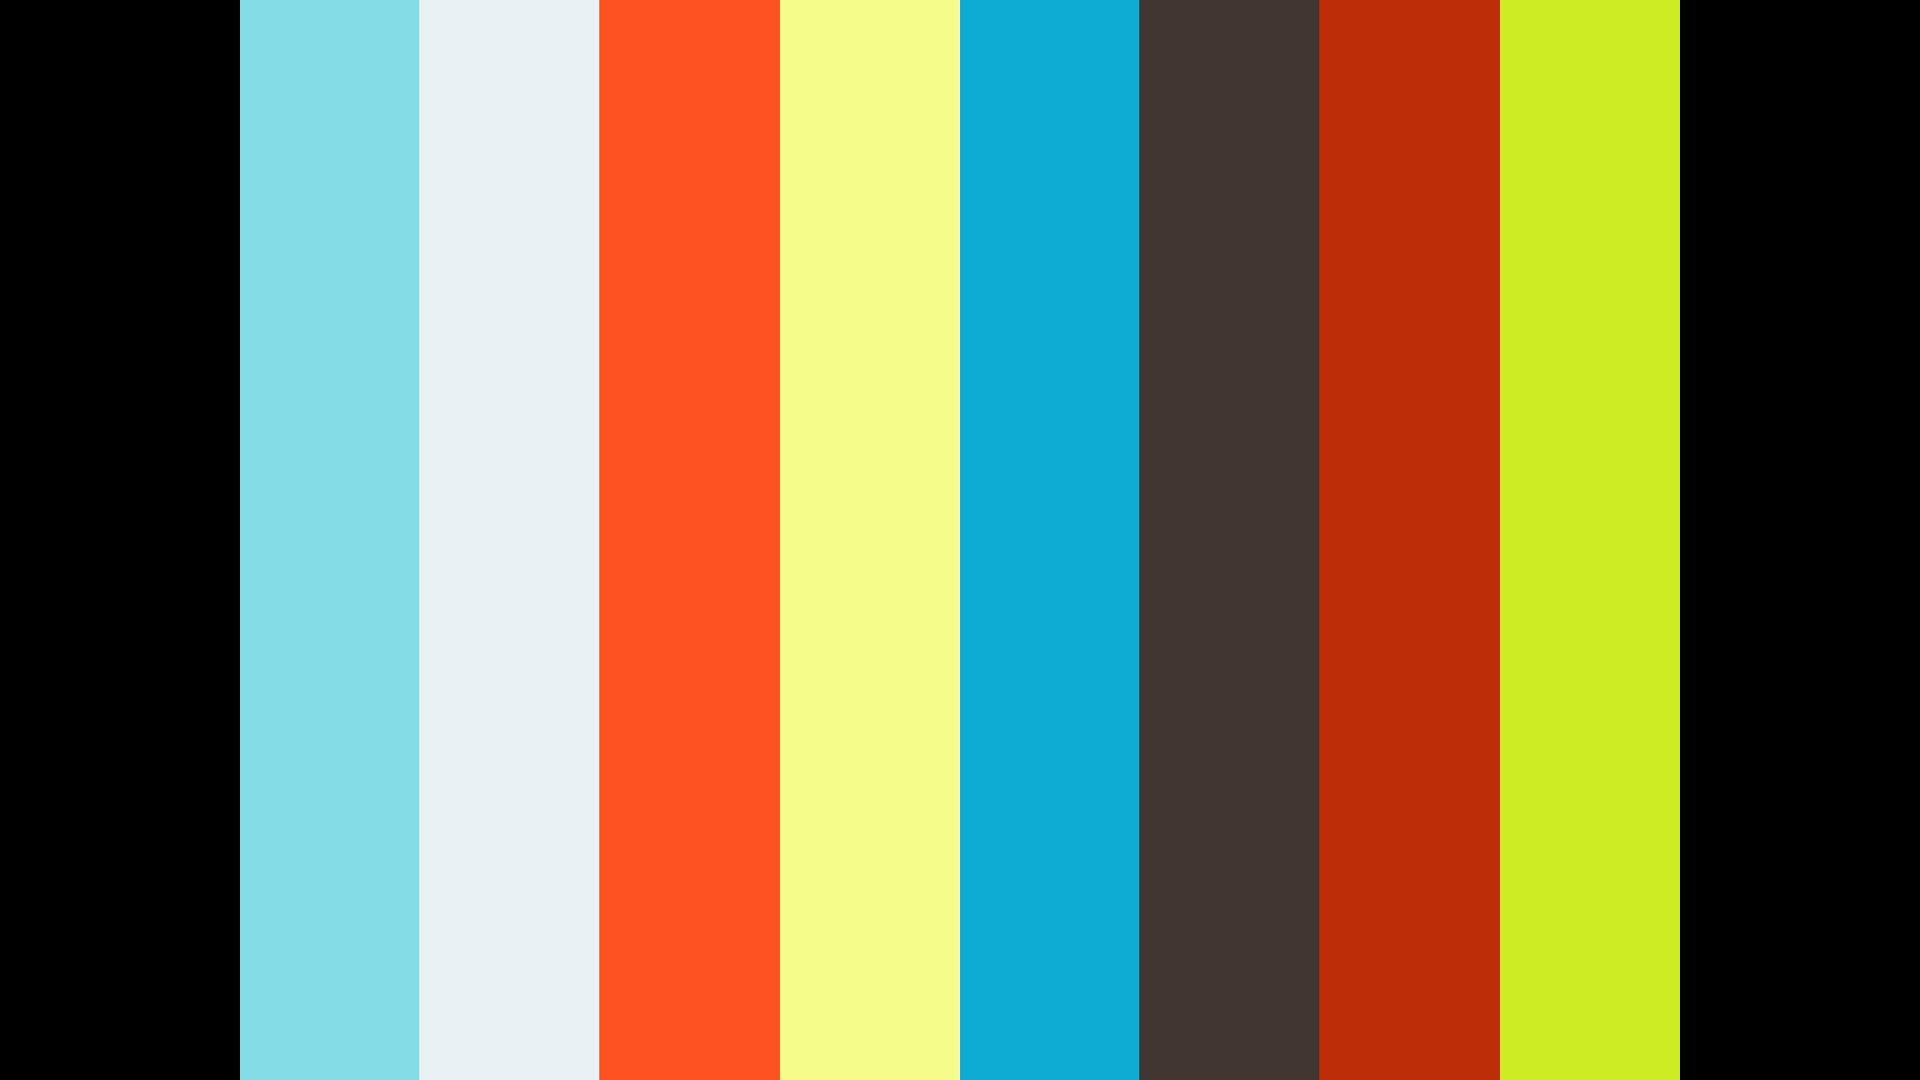 The Bridal Suite Cheshire promo video